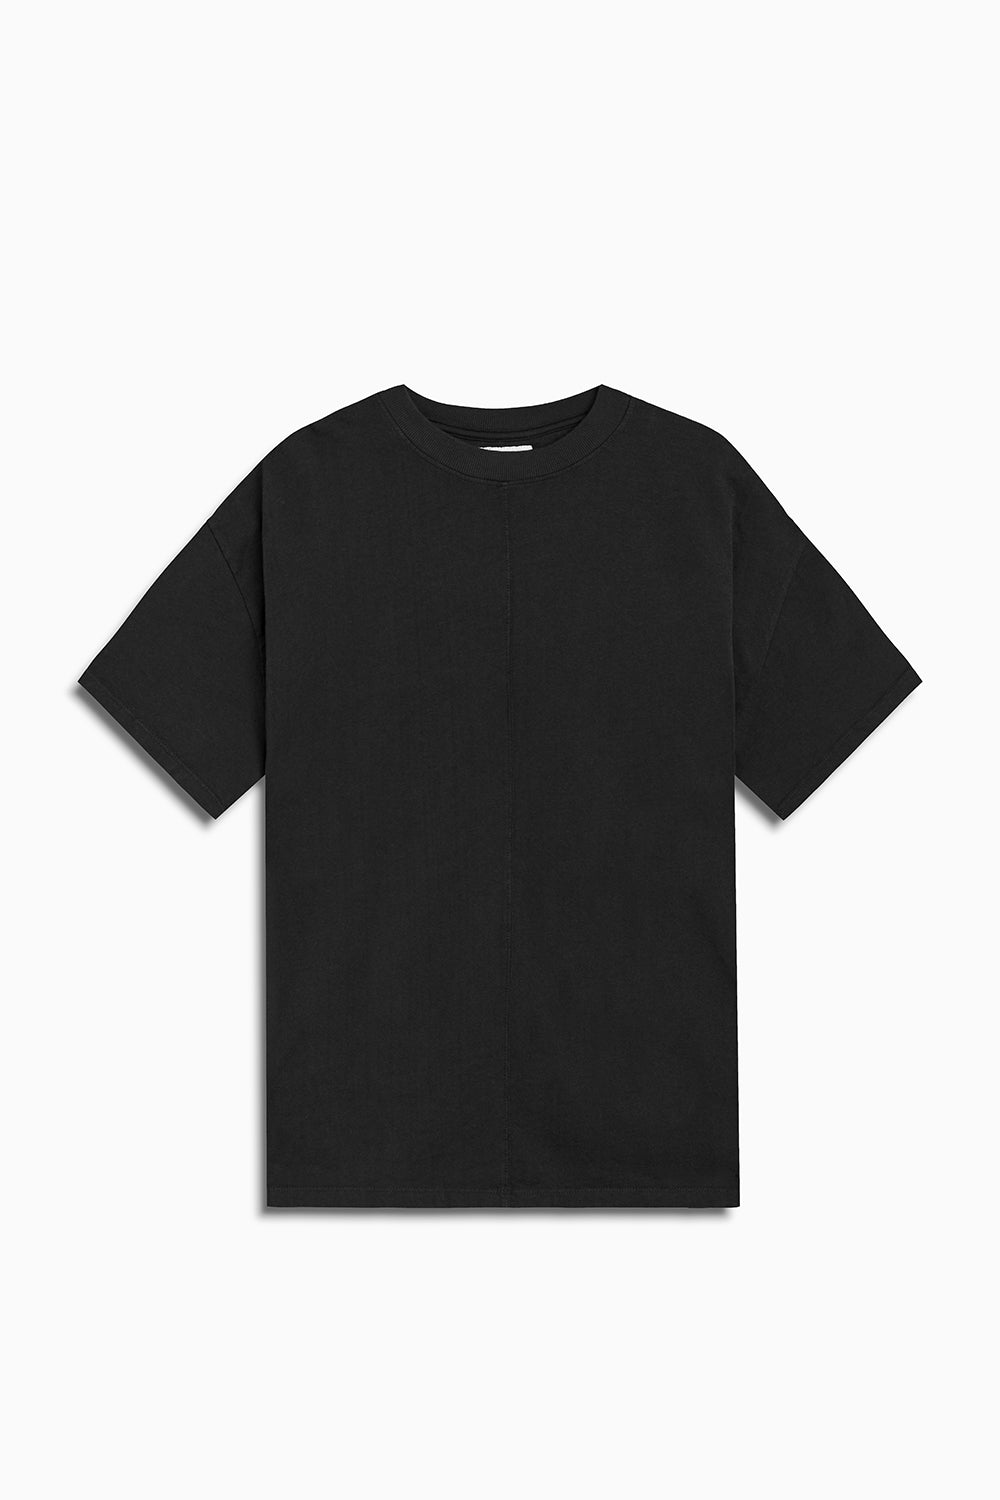 standard tee / washed black